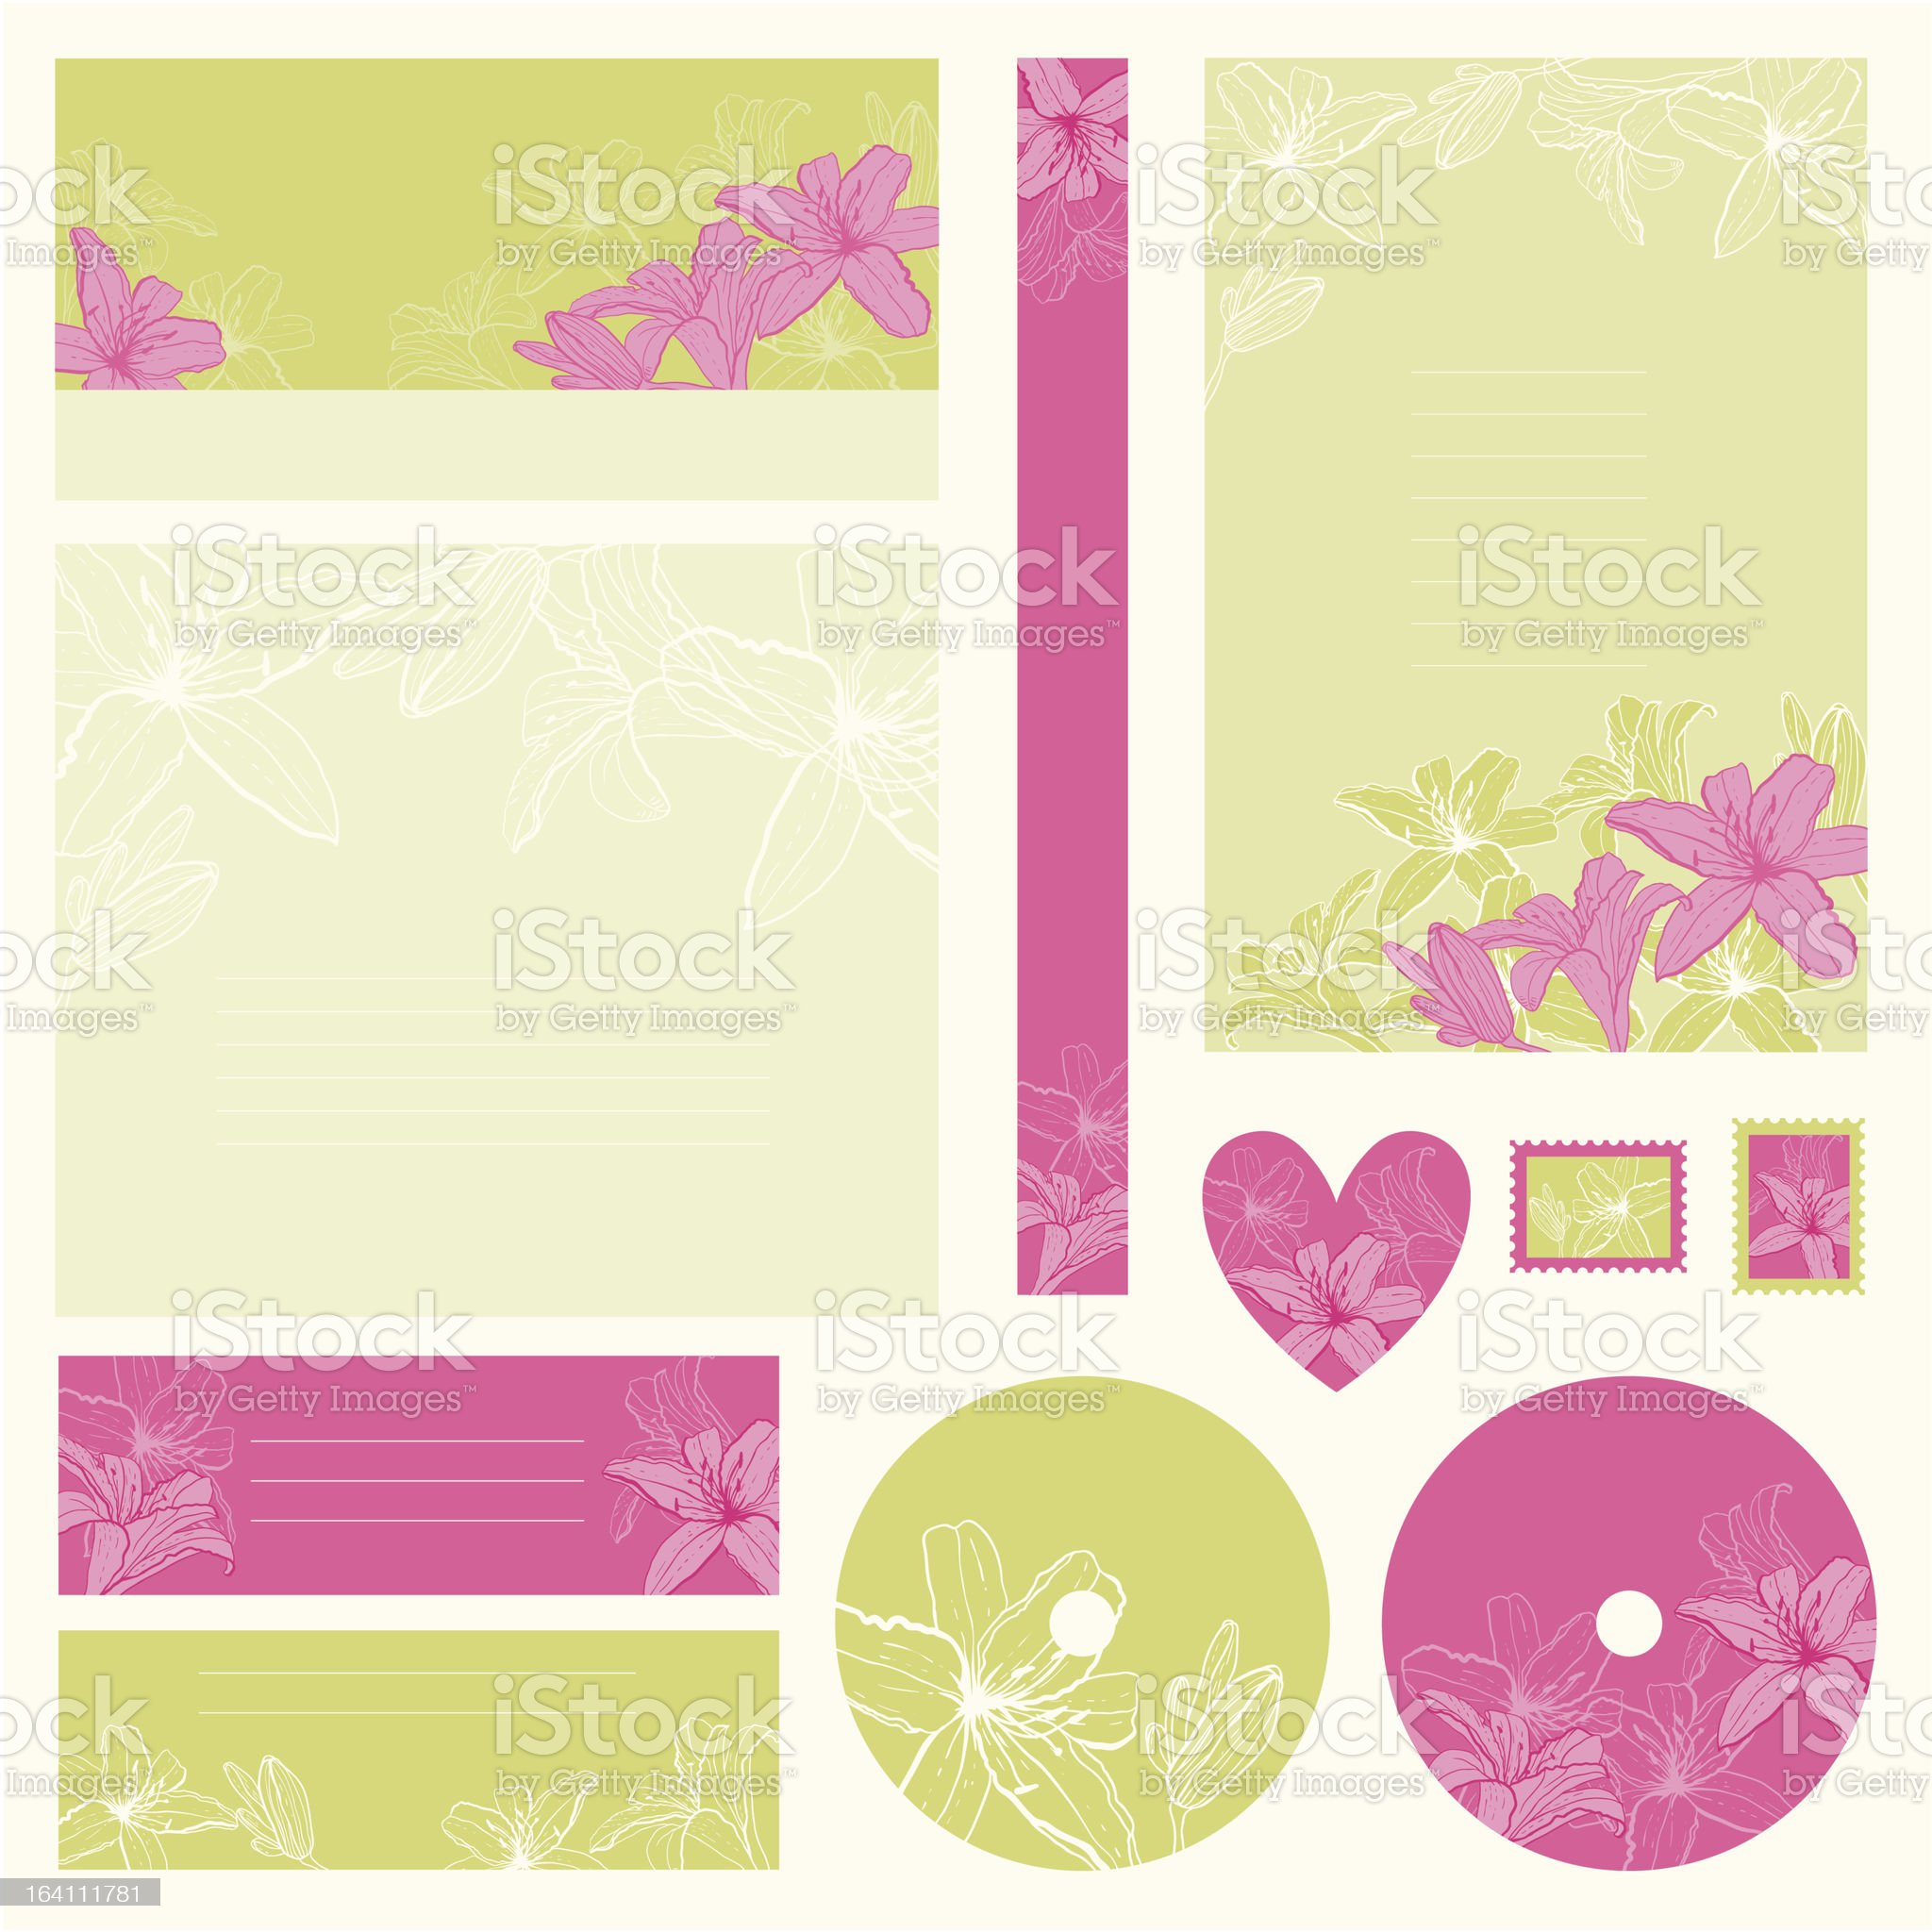 Set of wedding invitations with flowers background. royalty-free stock vector art